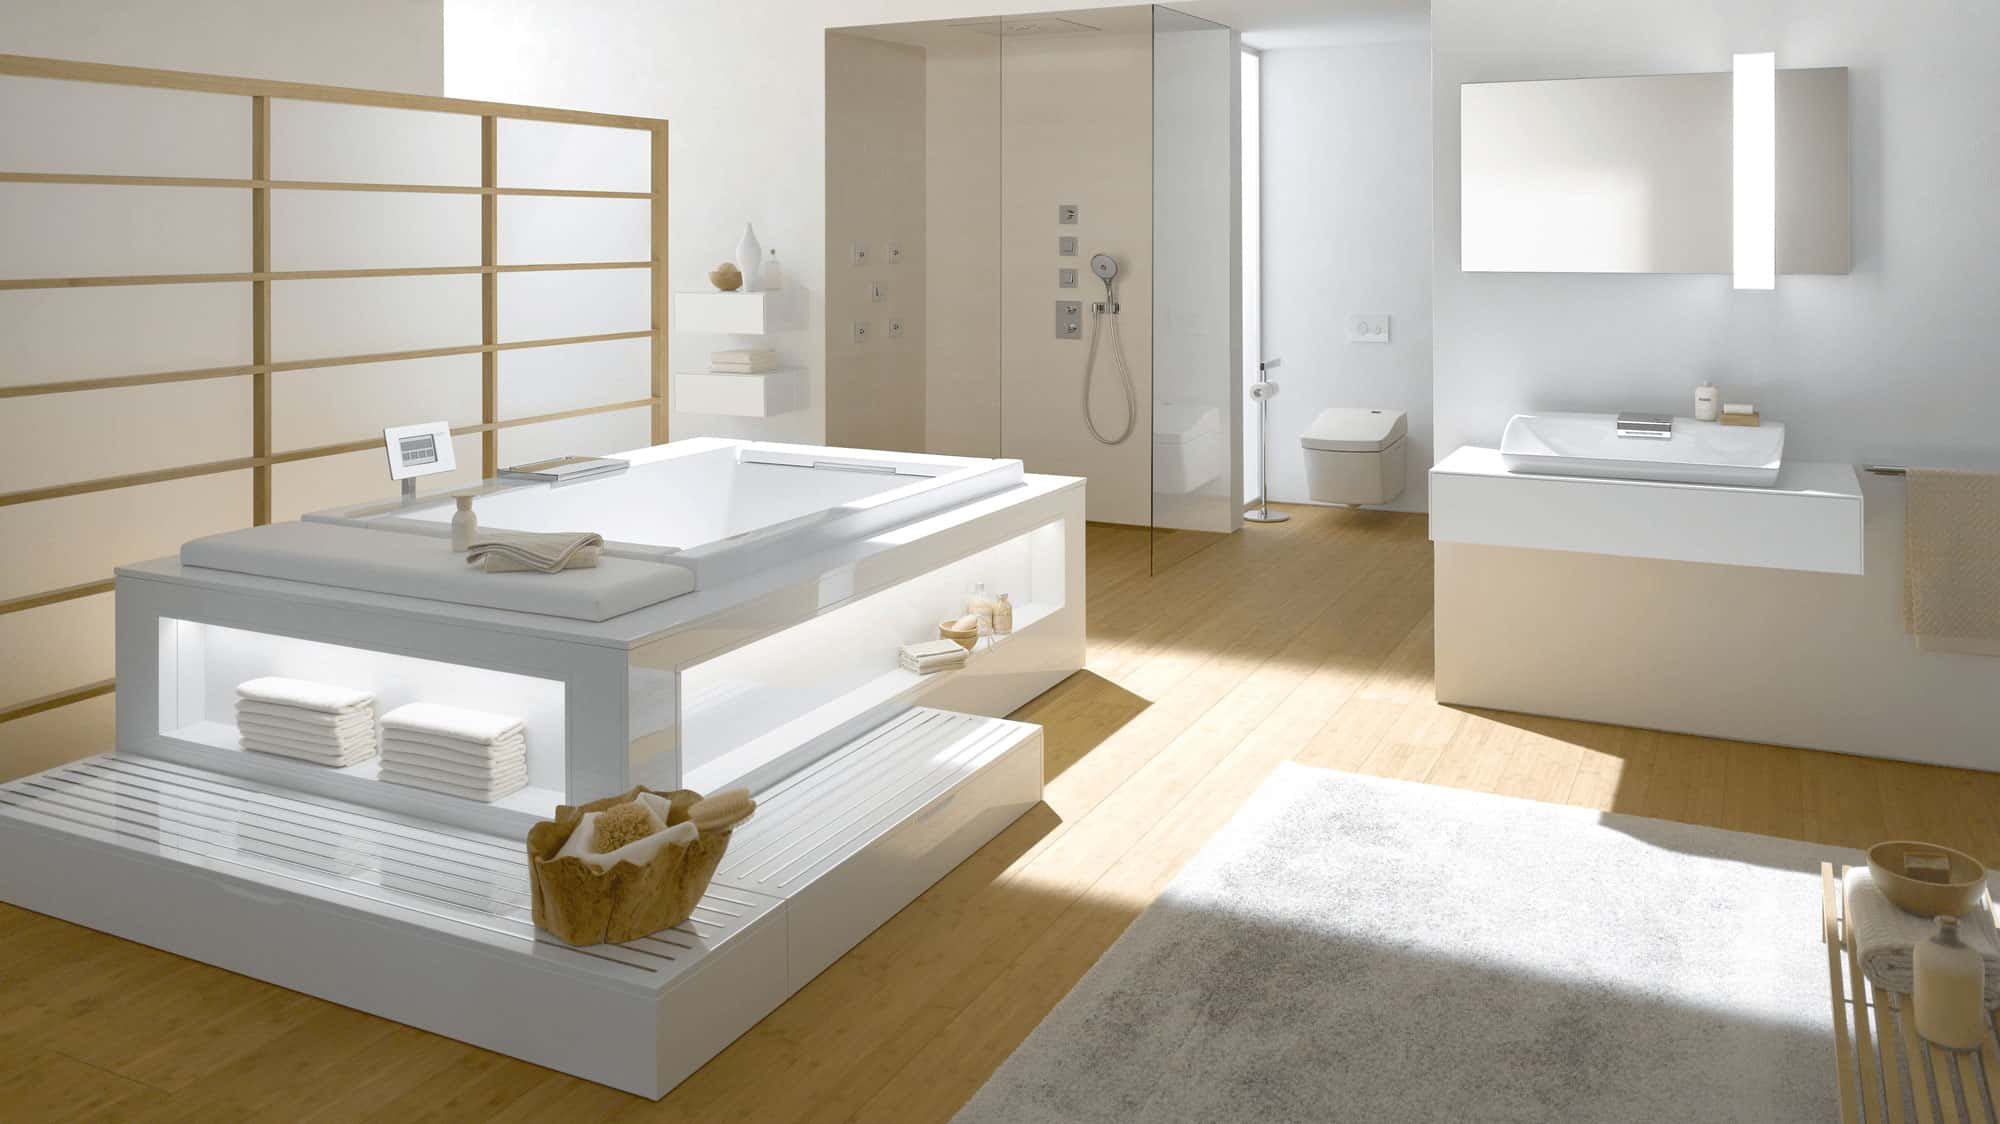 Home New - Alternative Bathroom Showrooms London